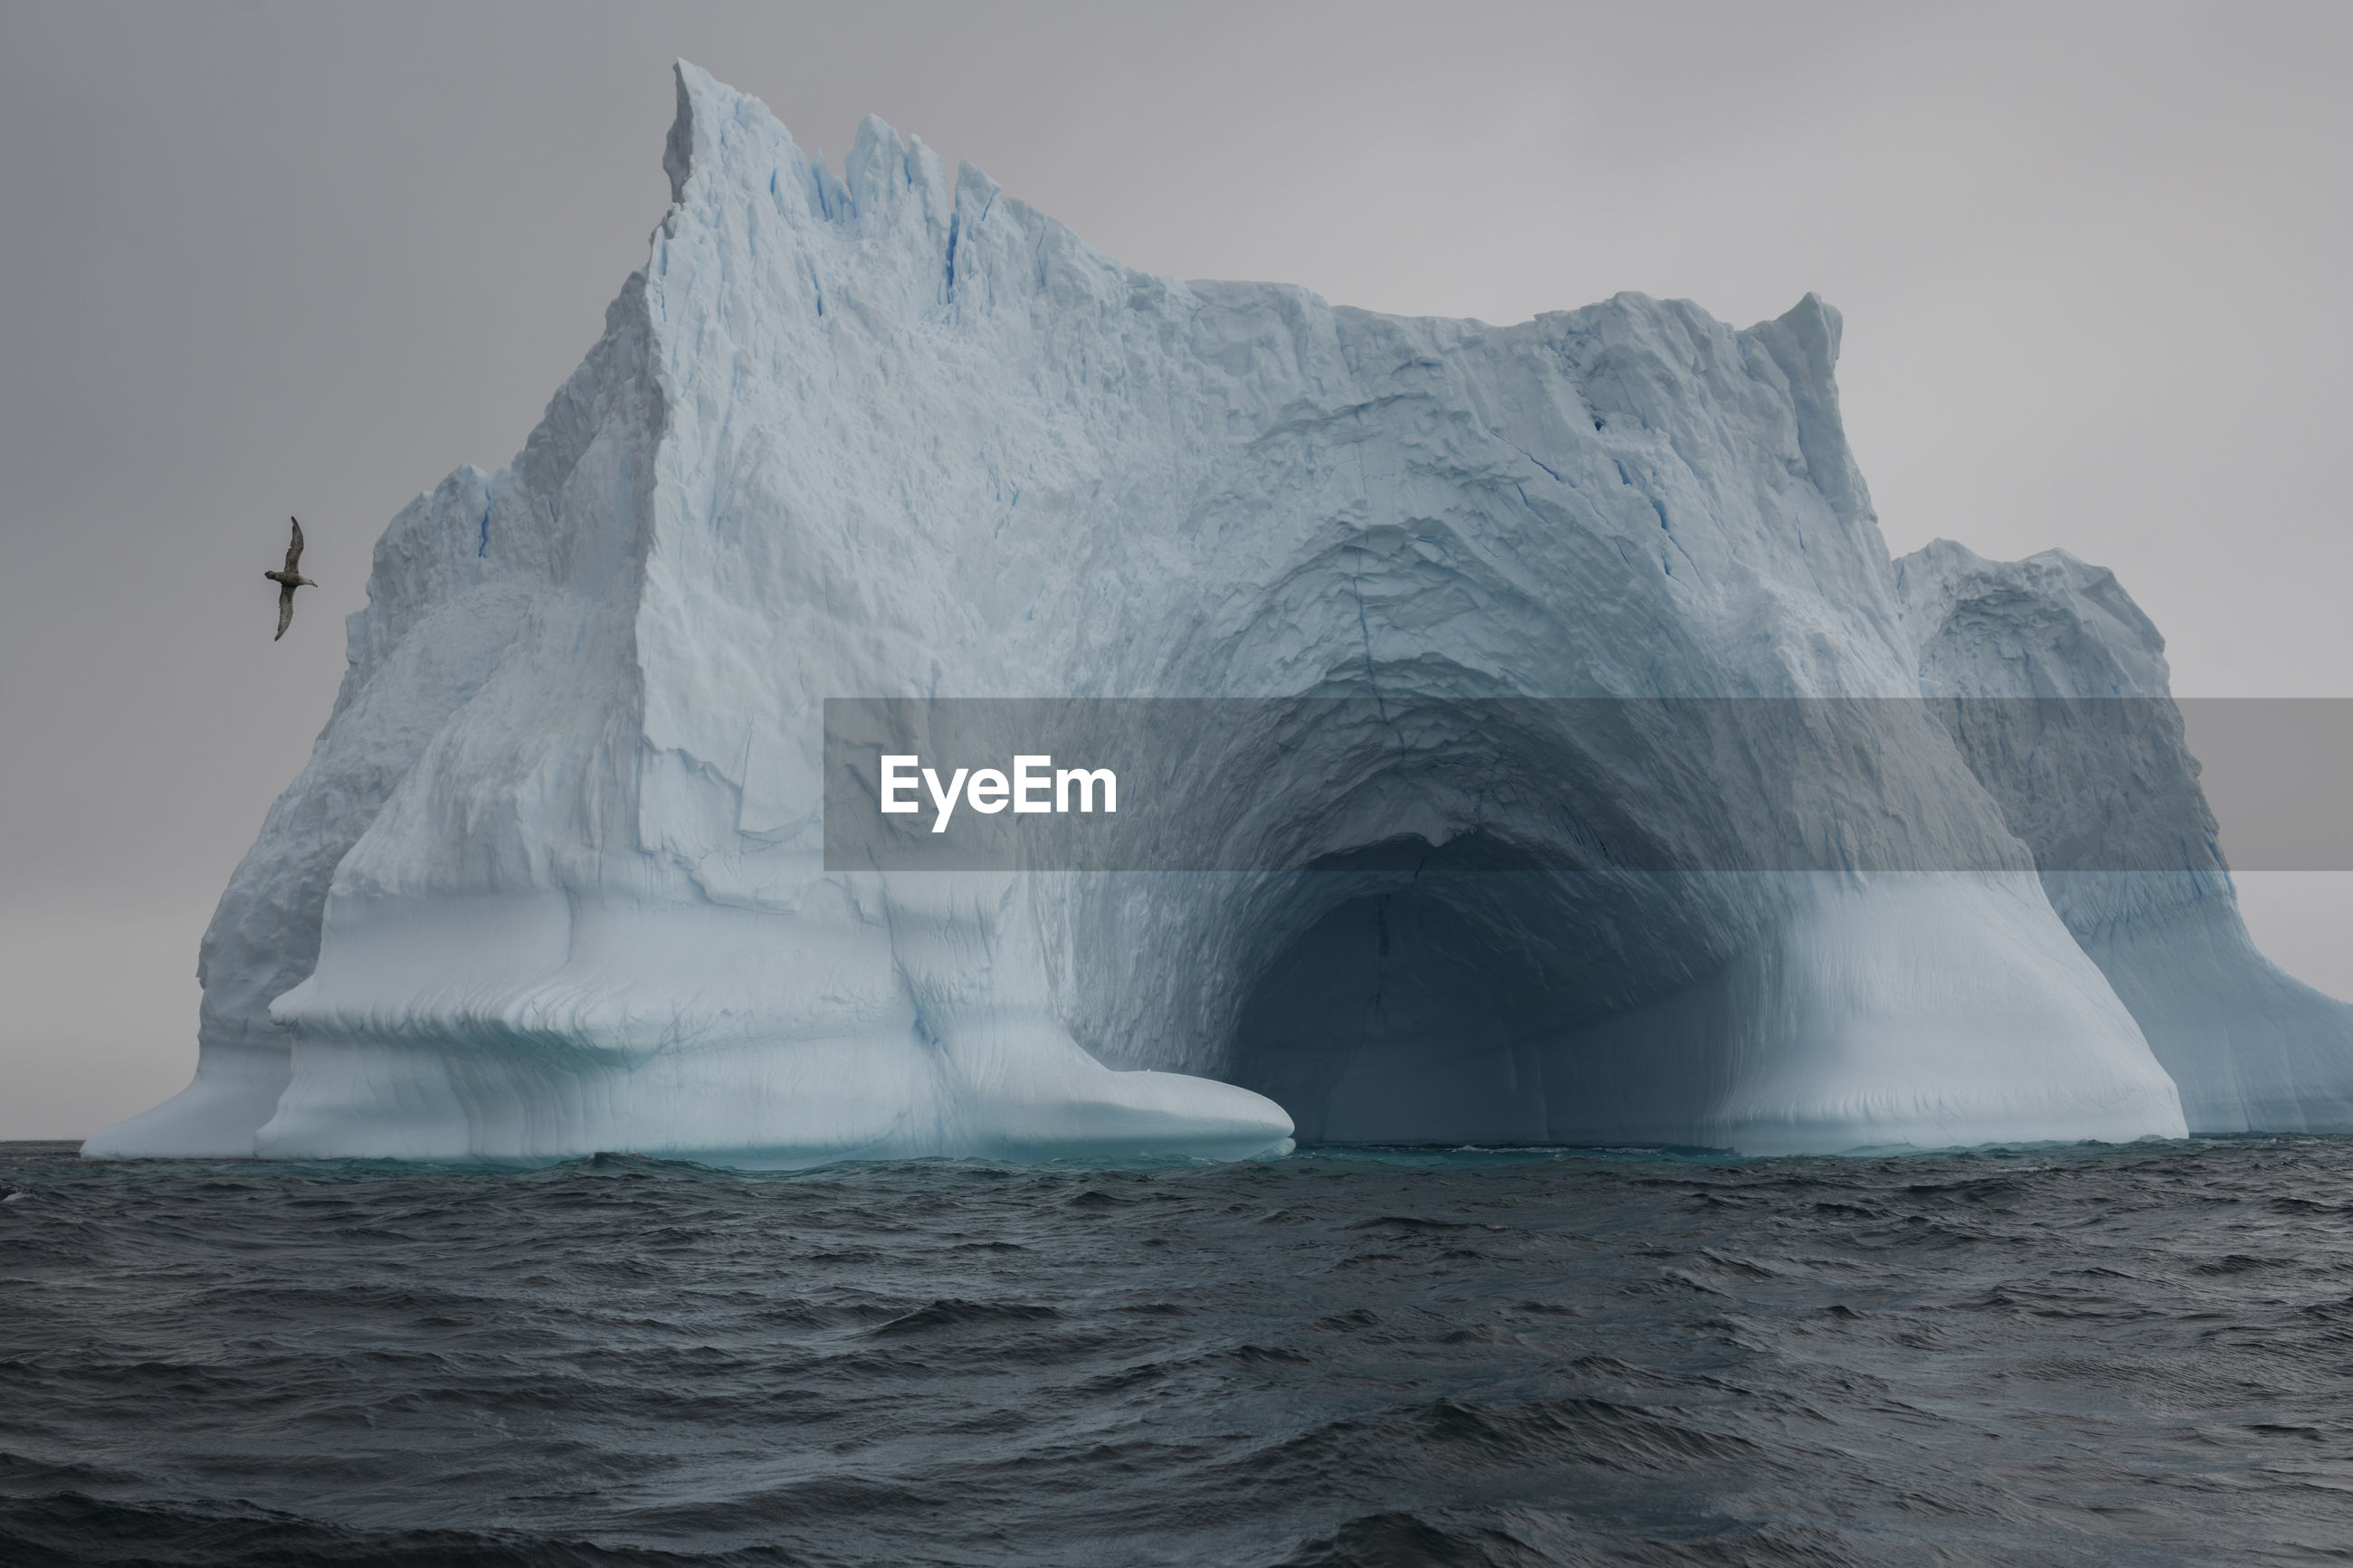 Scenic view of ice cave in sea against sky during winter